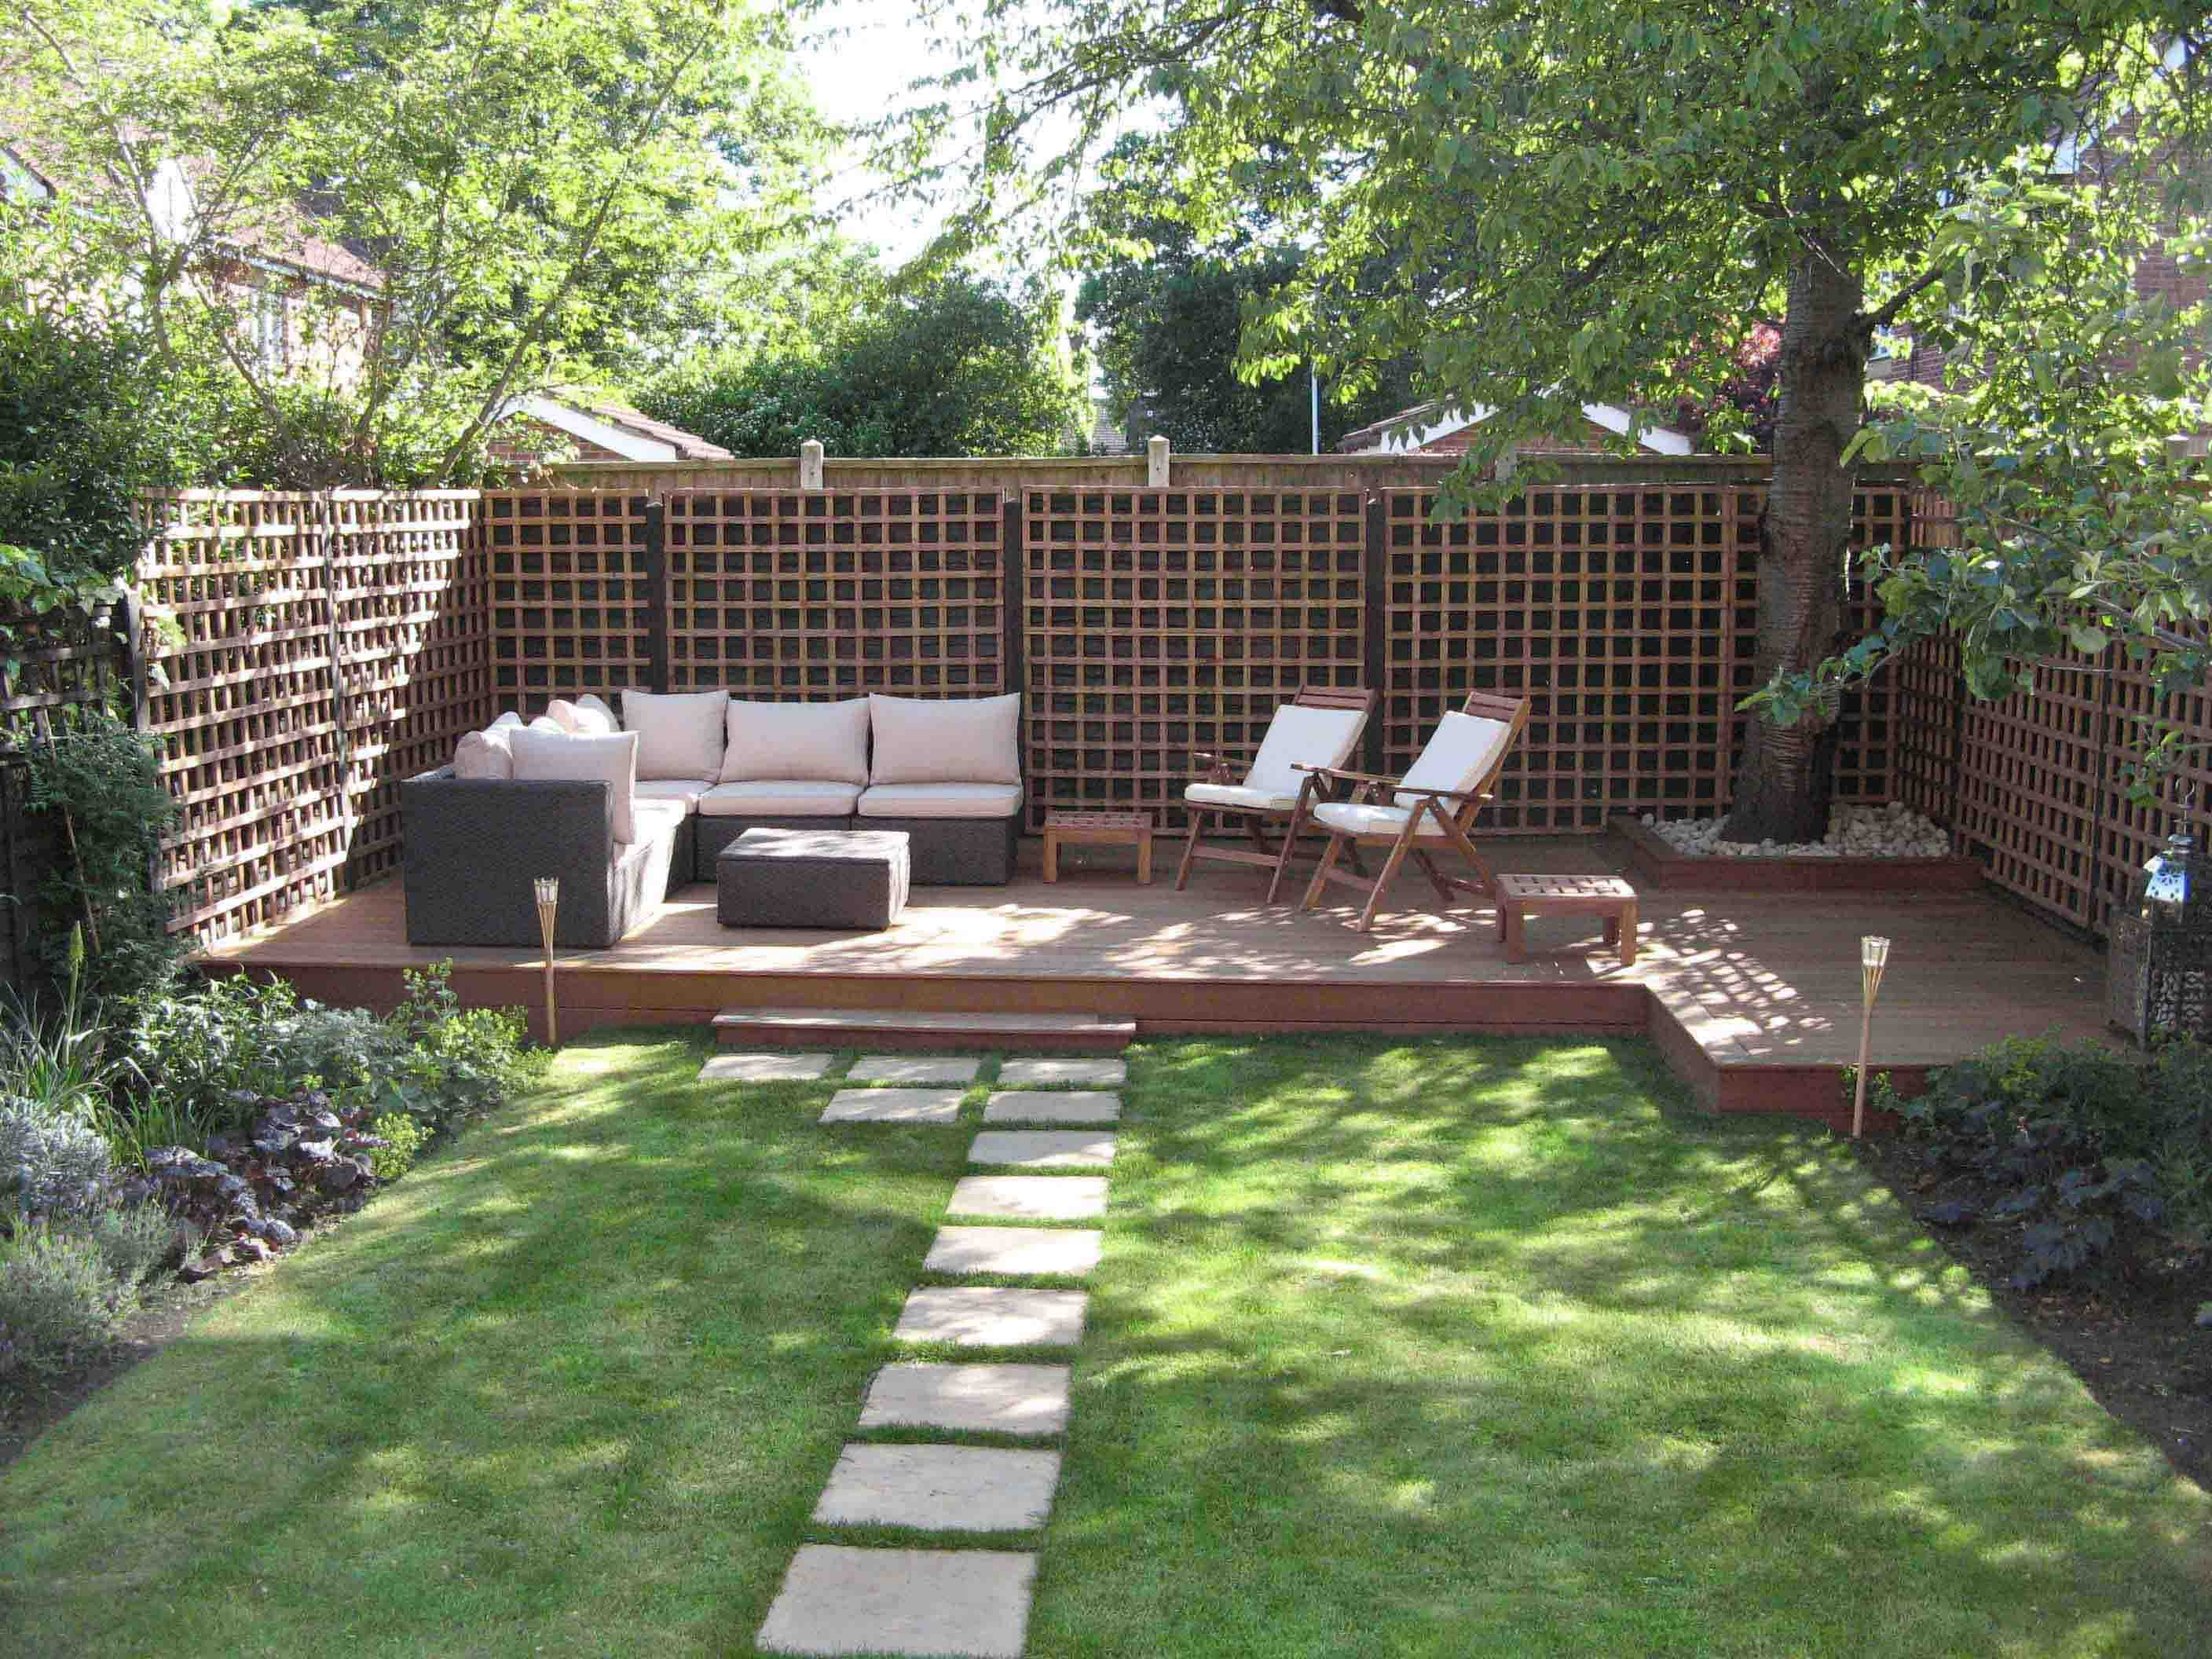 Home and garden design ideas homesfeed Home and garden furniture